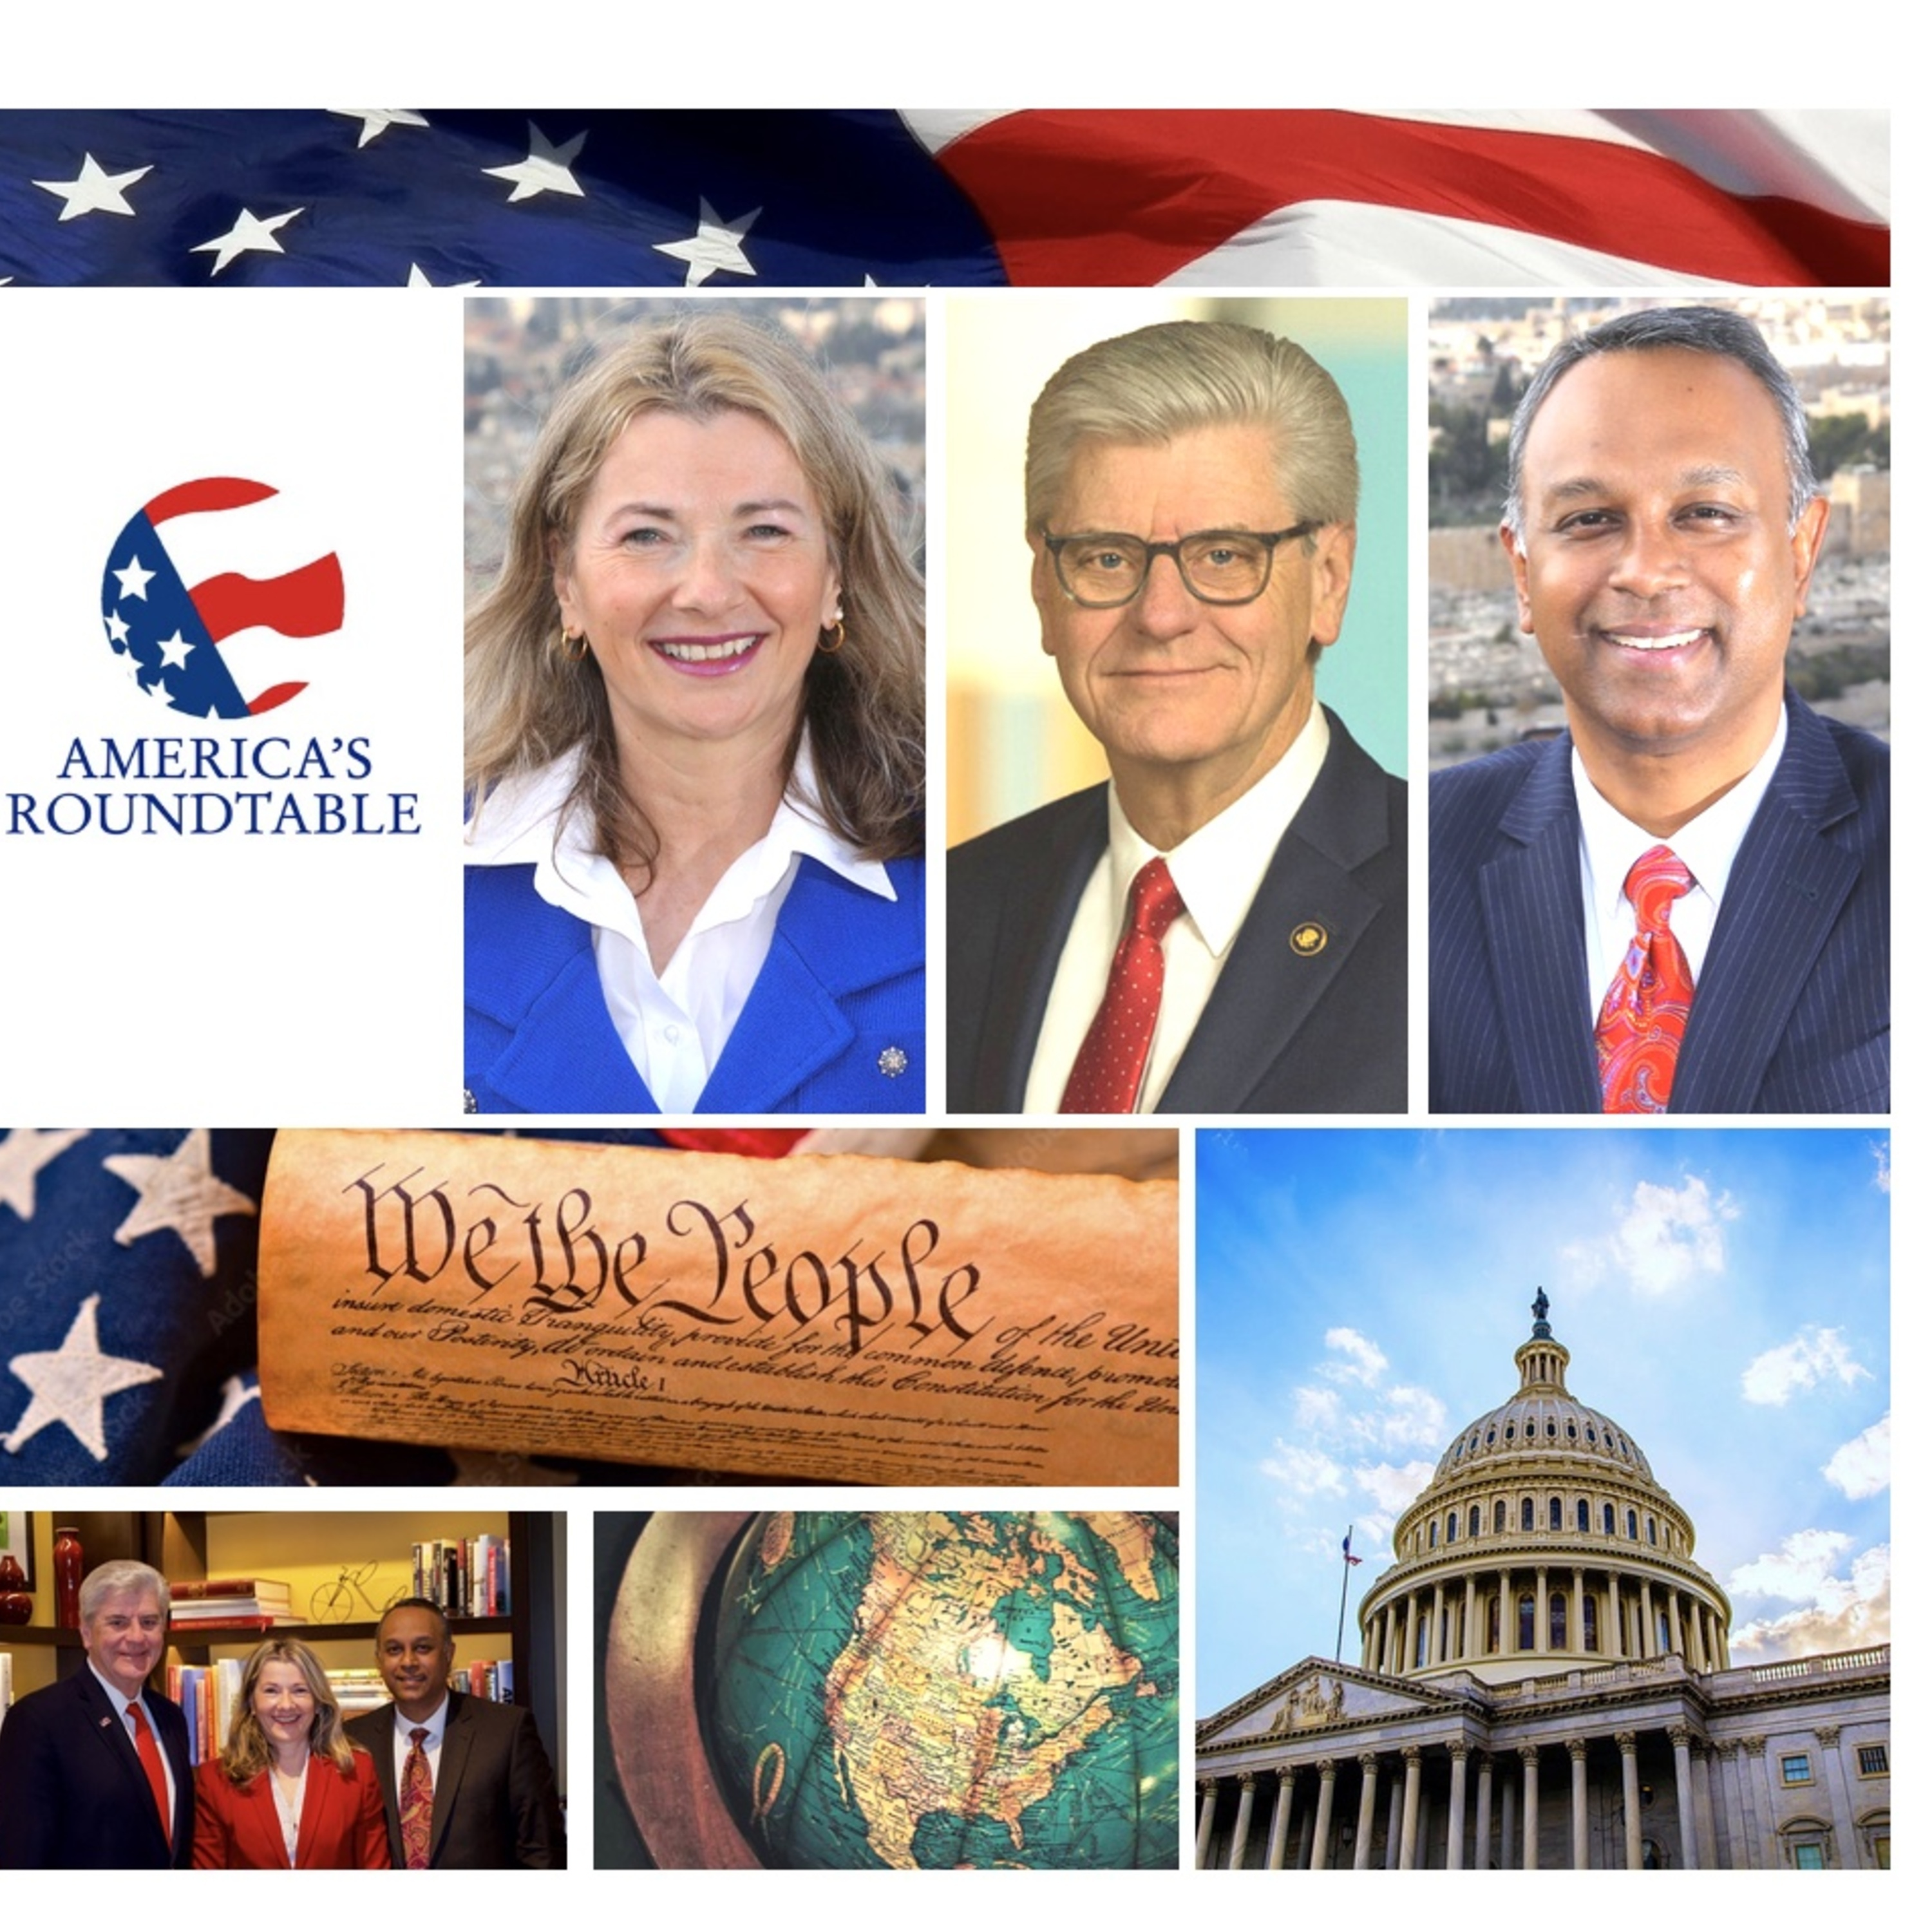 Governor Phil Bryant   The Future of Education in America - Knowledge or Indoctrination?